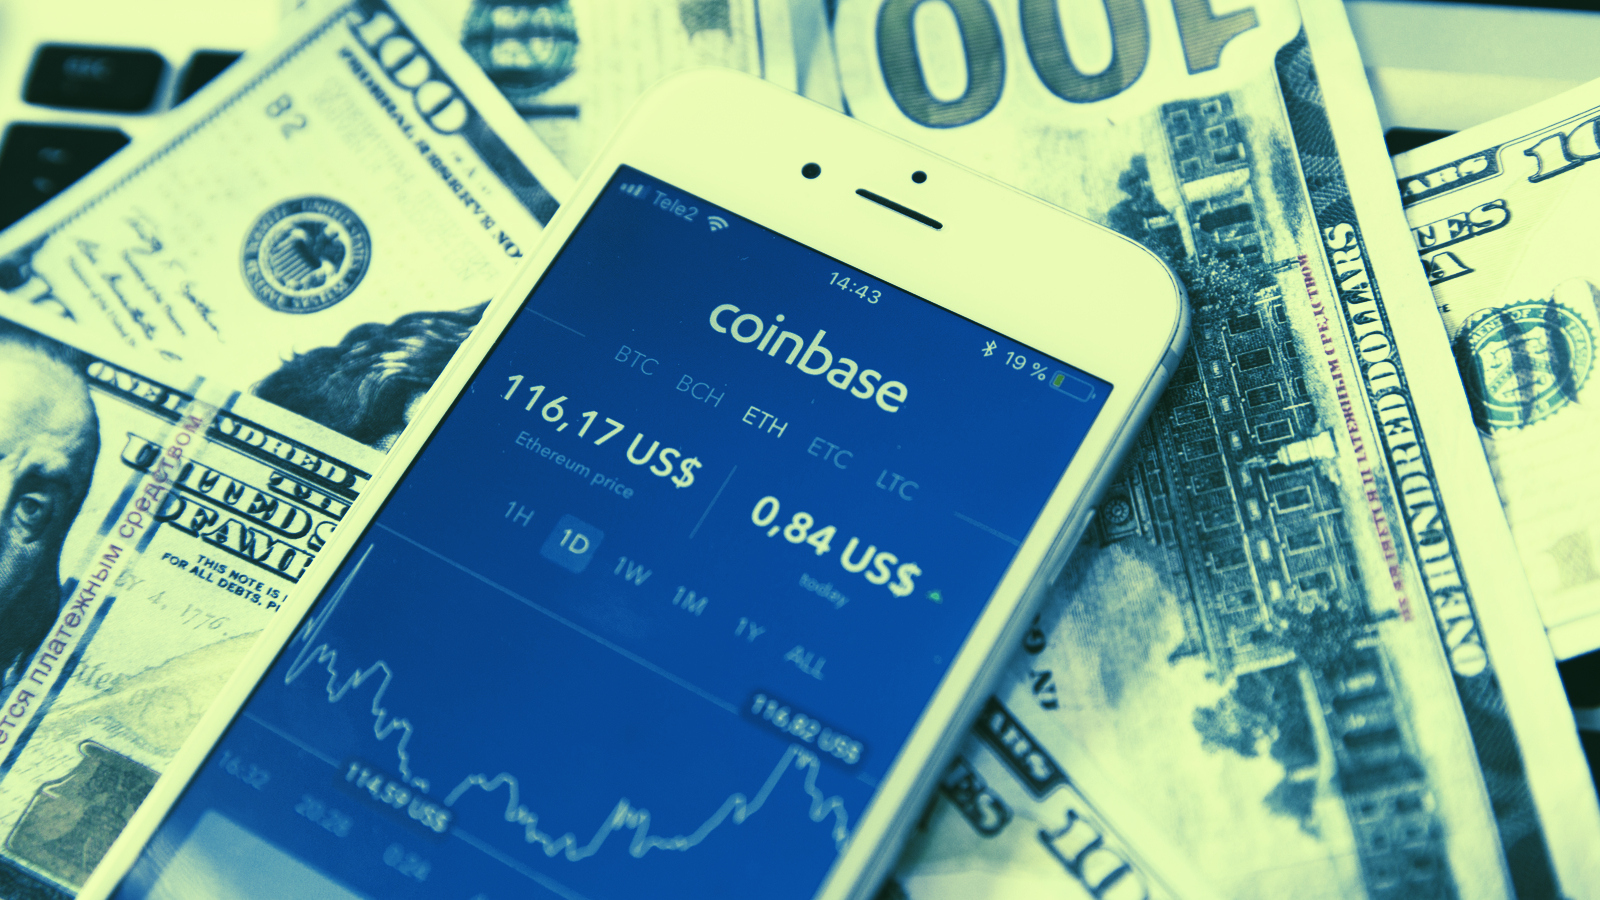 Coinbase Direct Listing Formerly Ipo Everything You Need To Know Decrypt